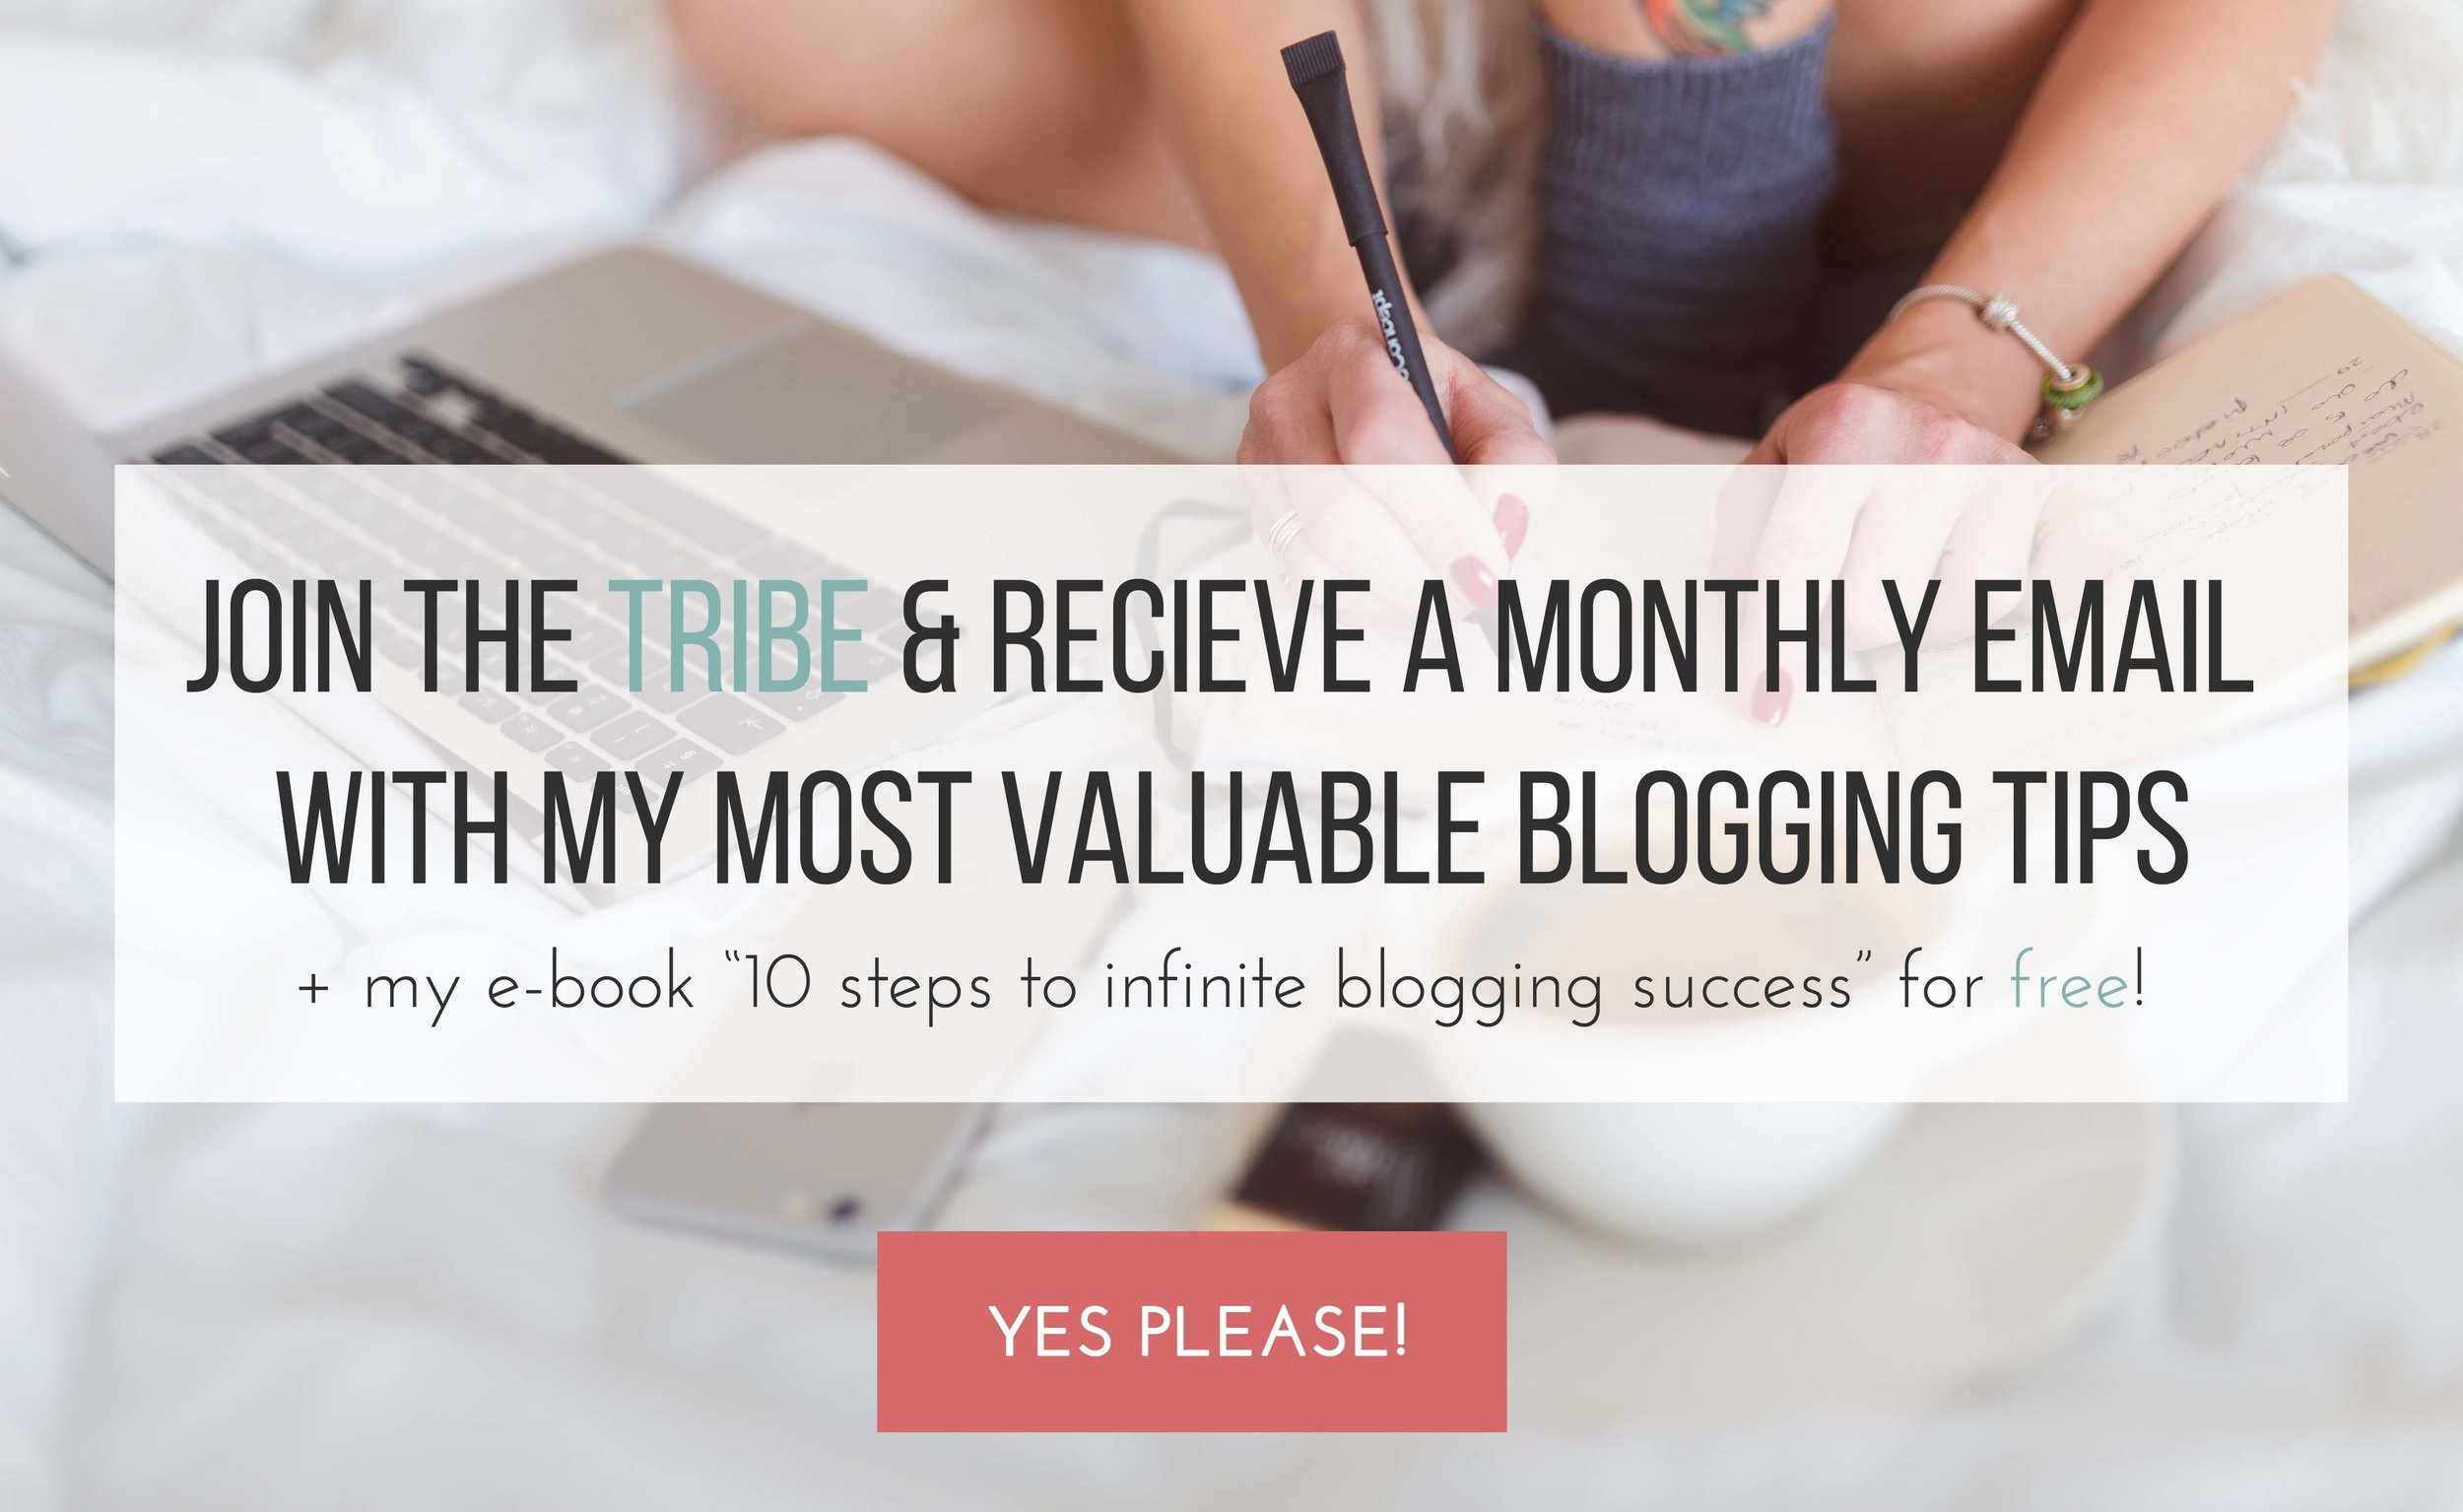 Join the Blog it Better Tribe and receive my most valuable blogging tips + a FREE blogging e-book!